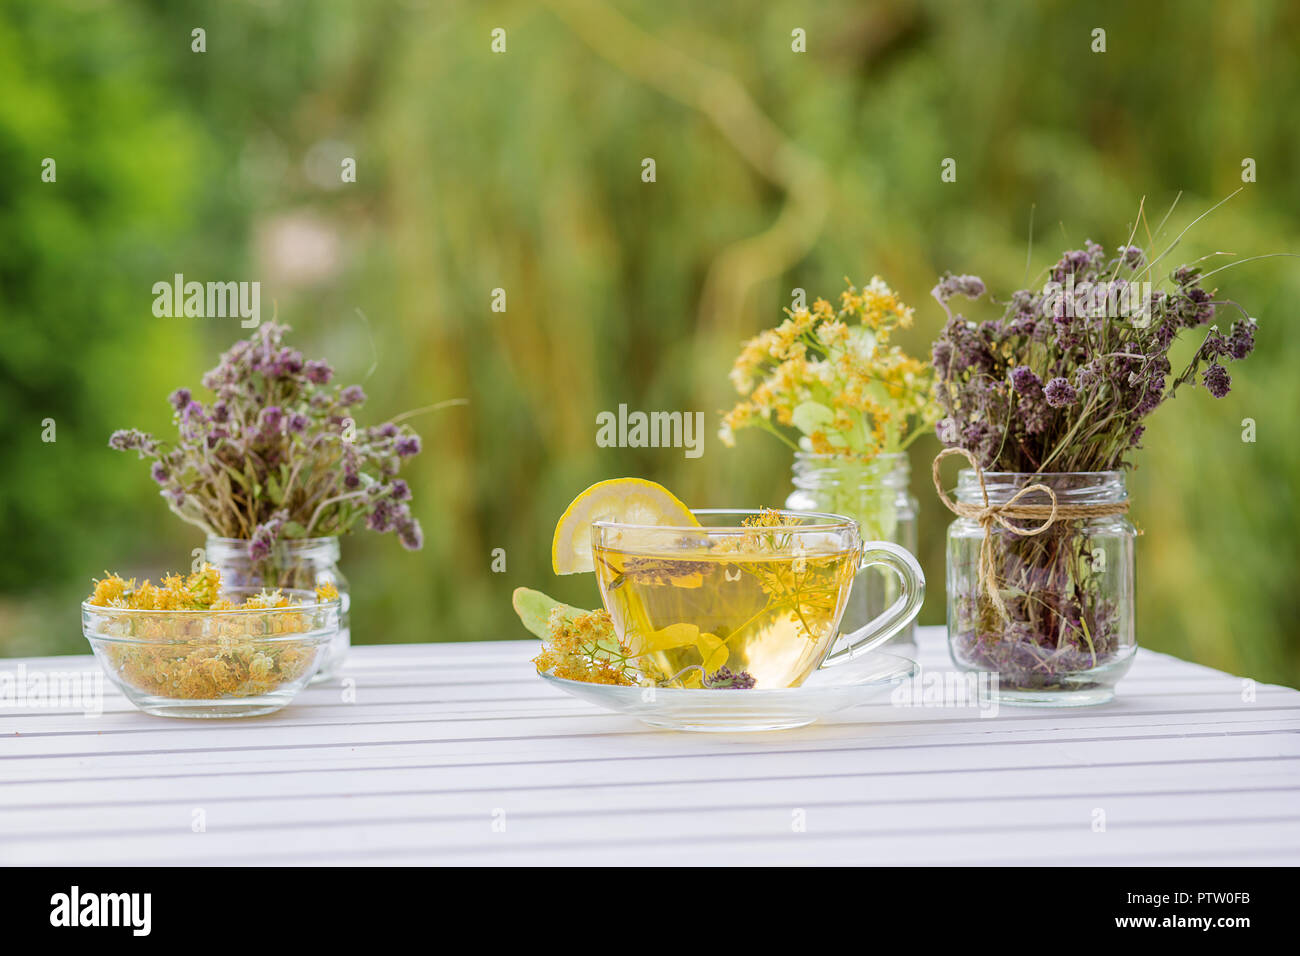 Linden inflorescences, herbal tea, view from high angle, space for a text. Stock Photo